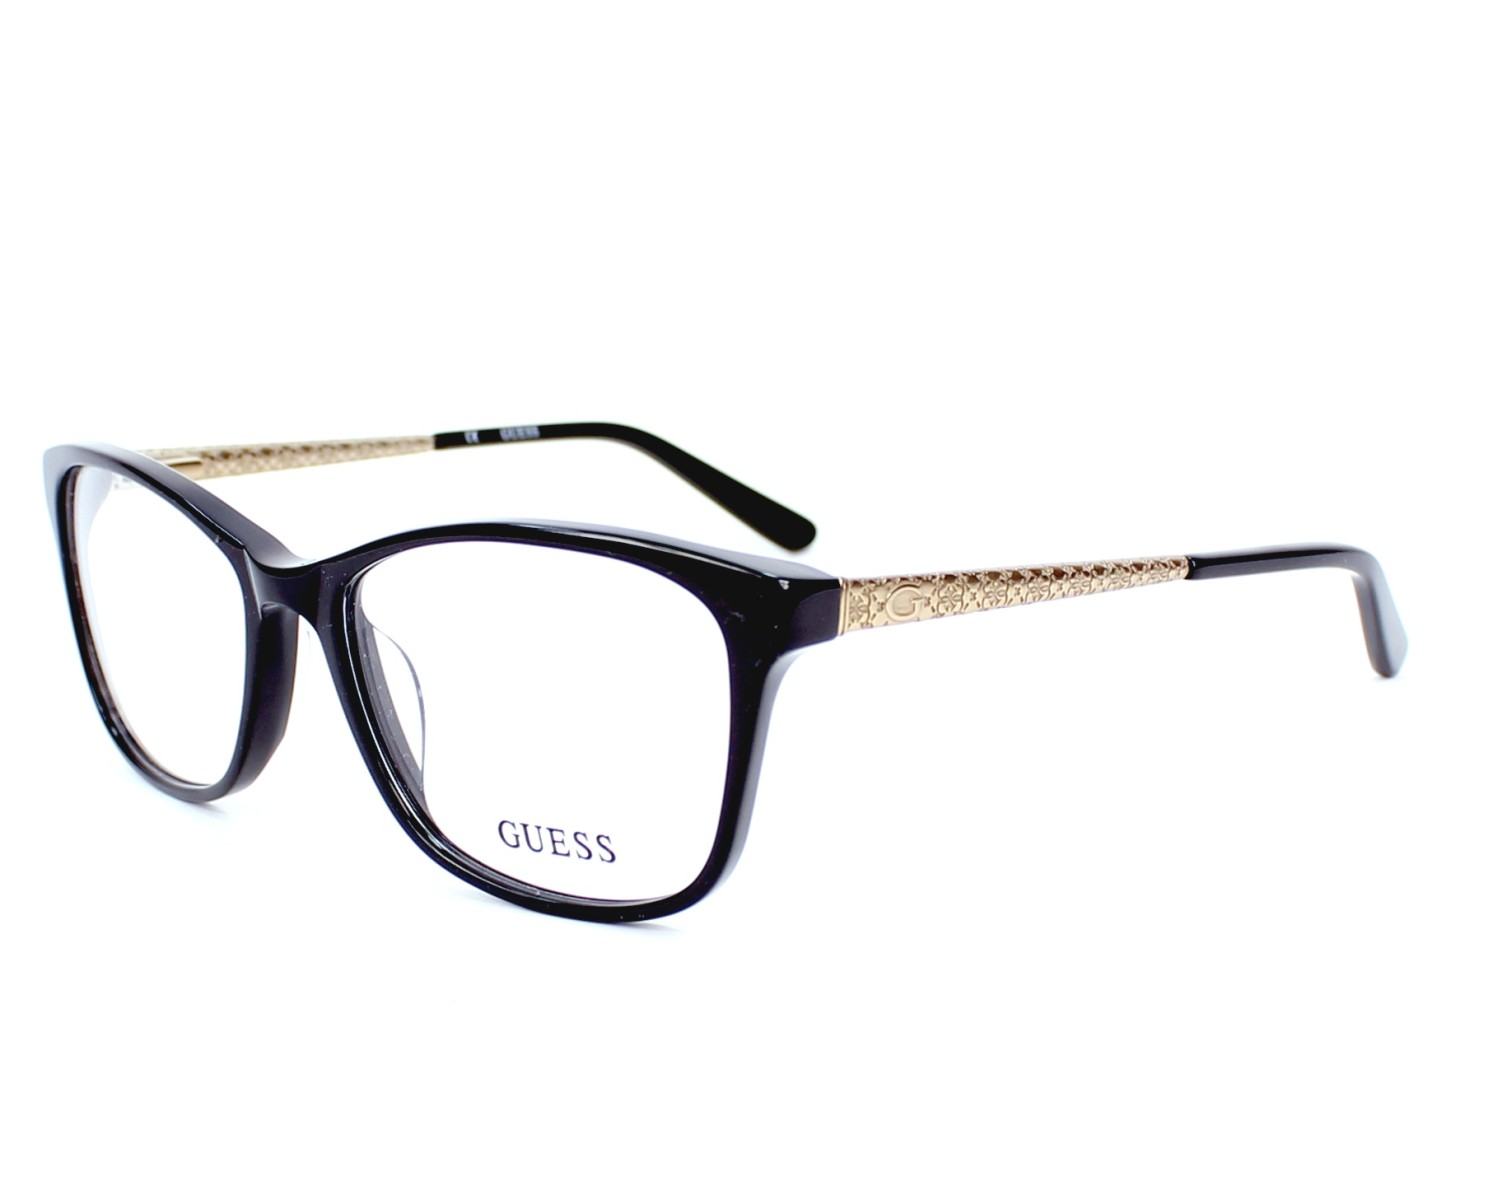 Order your Guess eyeglasses GU2500 001 53 today